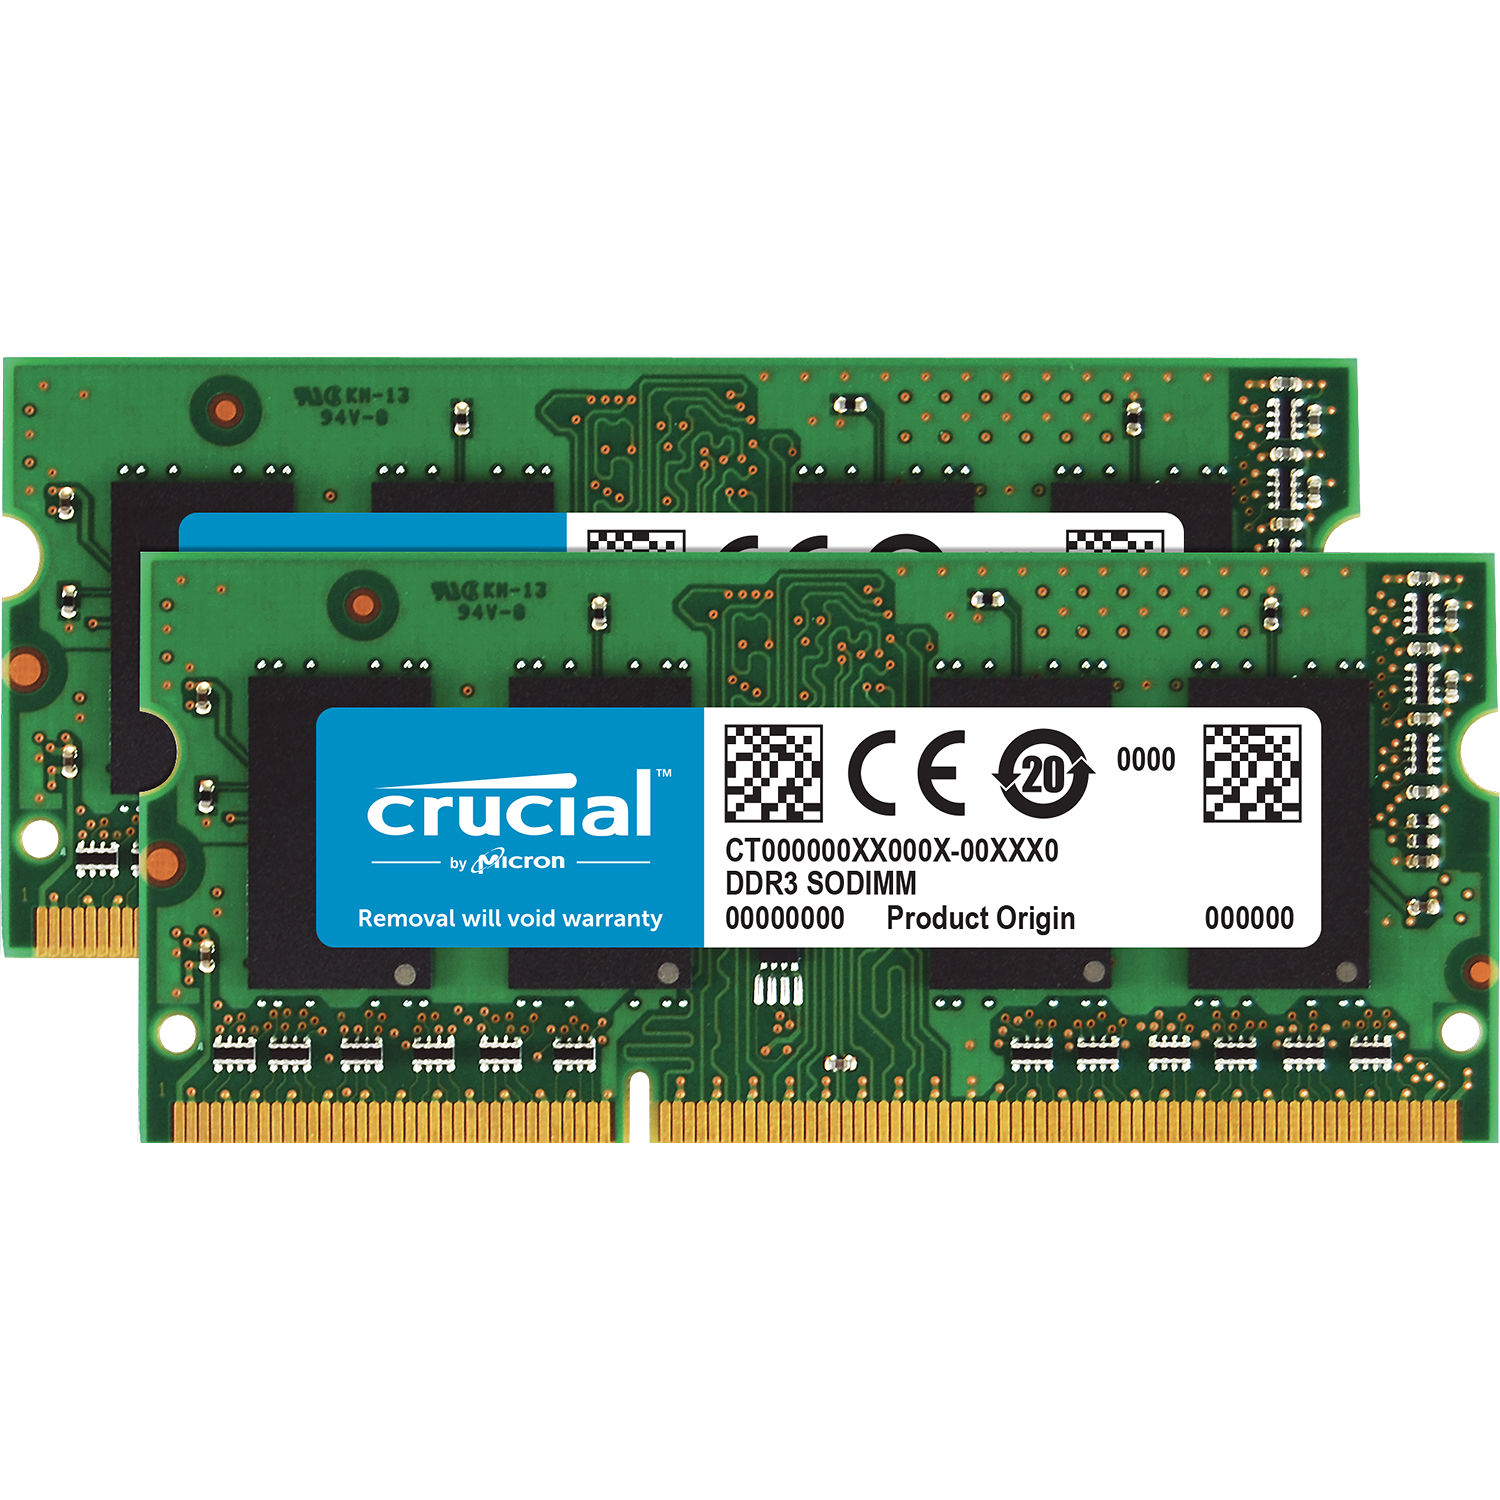 Crucial 16gb Ddr3 1600 Mhz So Dimm Memory Module Ct2k8g3s160bm Sodim Samsung Ddr 3 Kit For Mac 2x 8gb